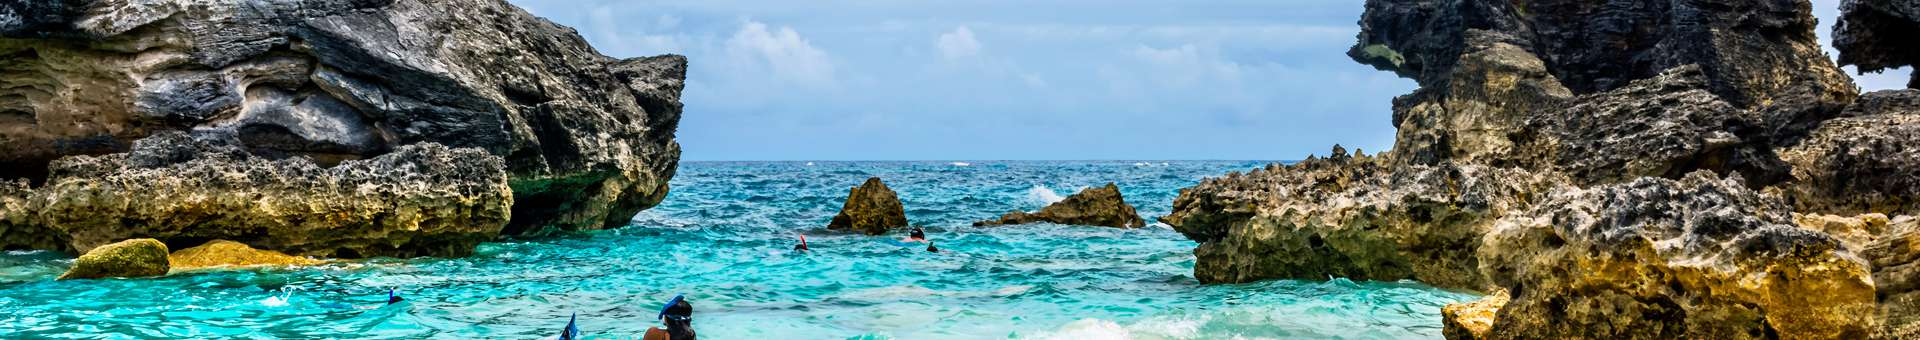 Search Whois information of domain names in Bermuda